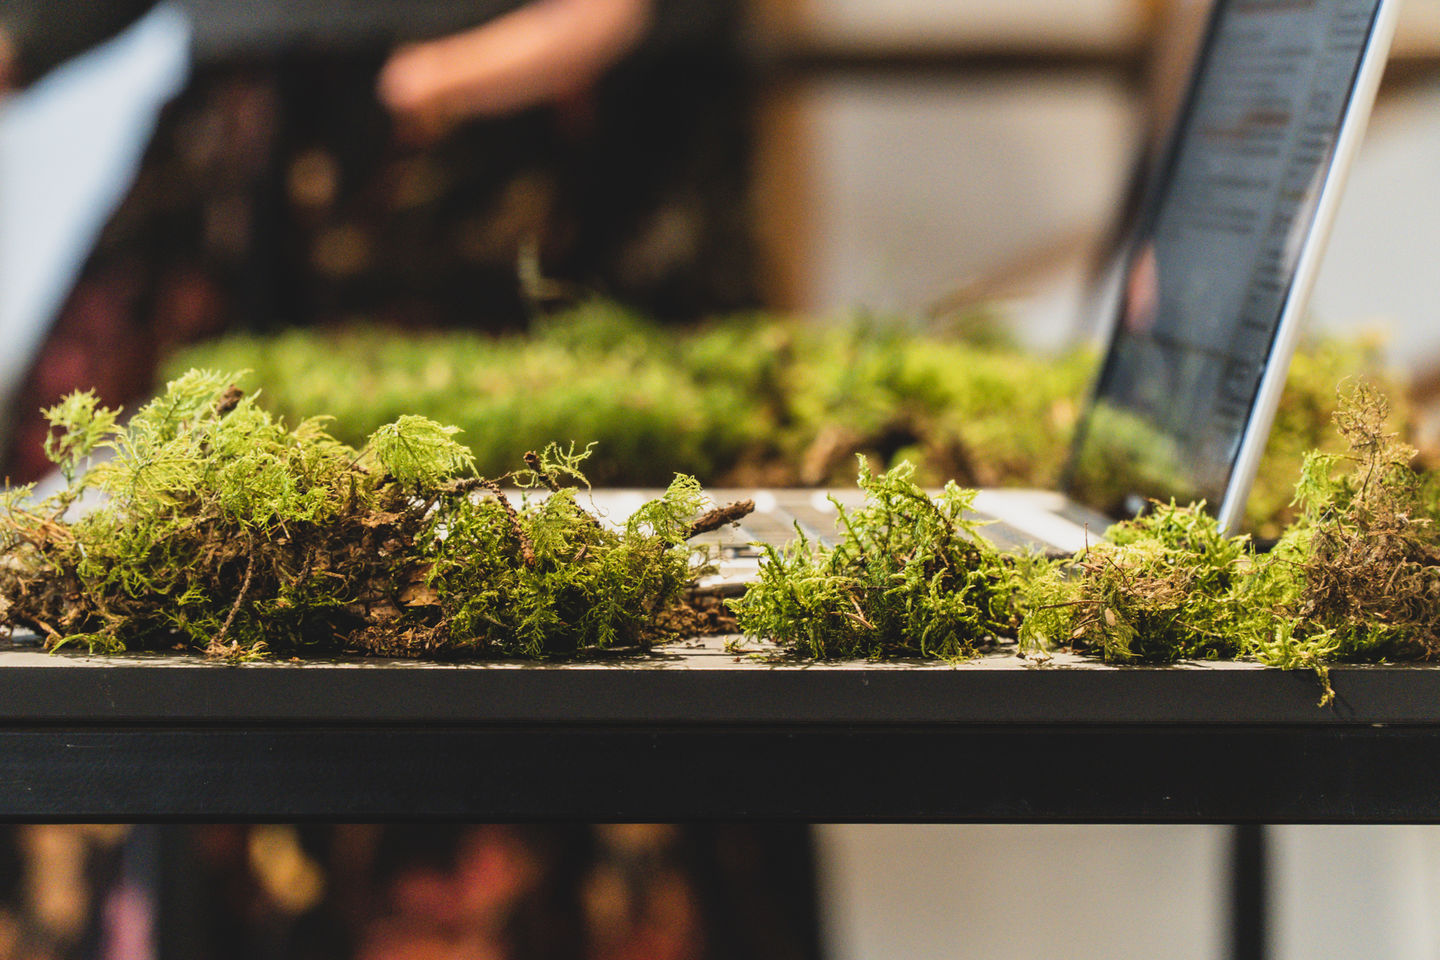 Green moss is placed around a macbook as part of an exhibition display